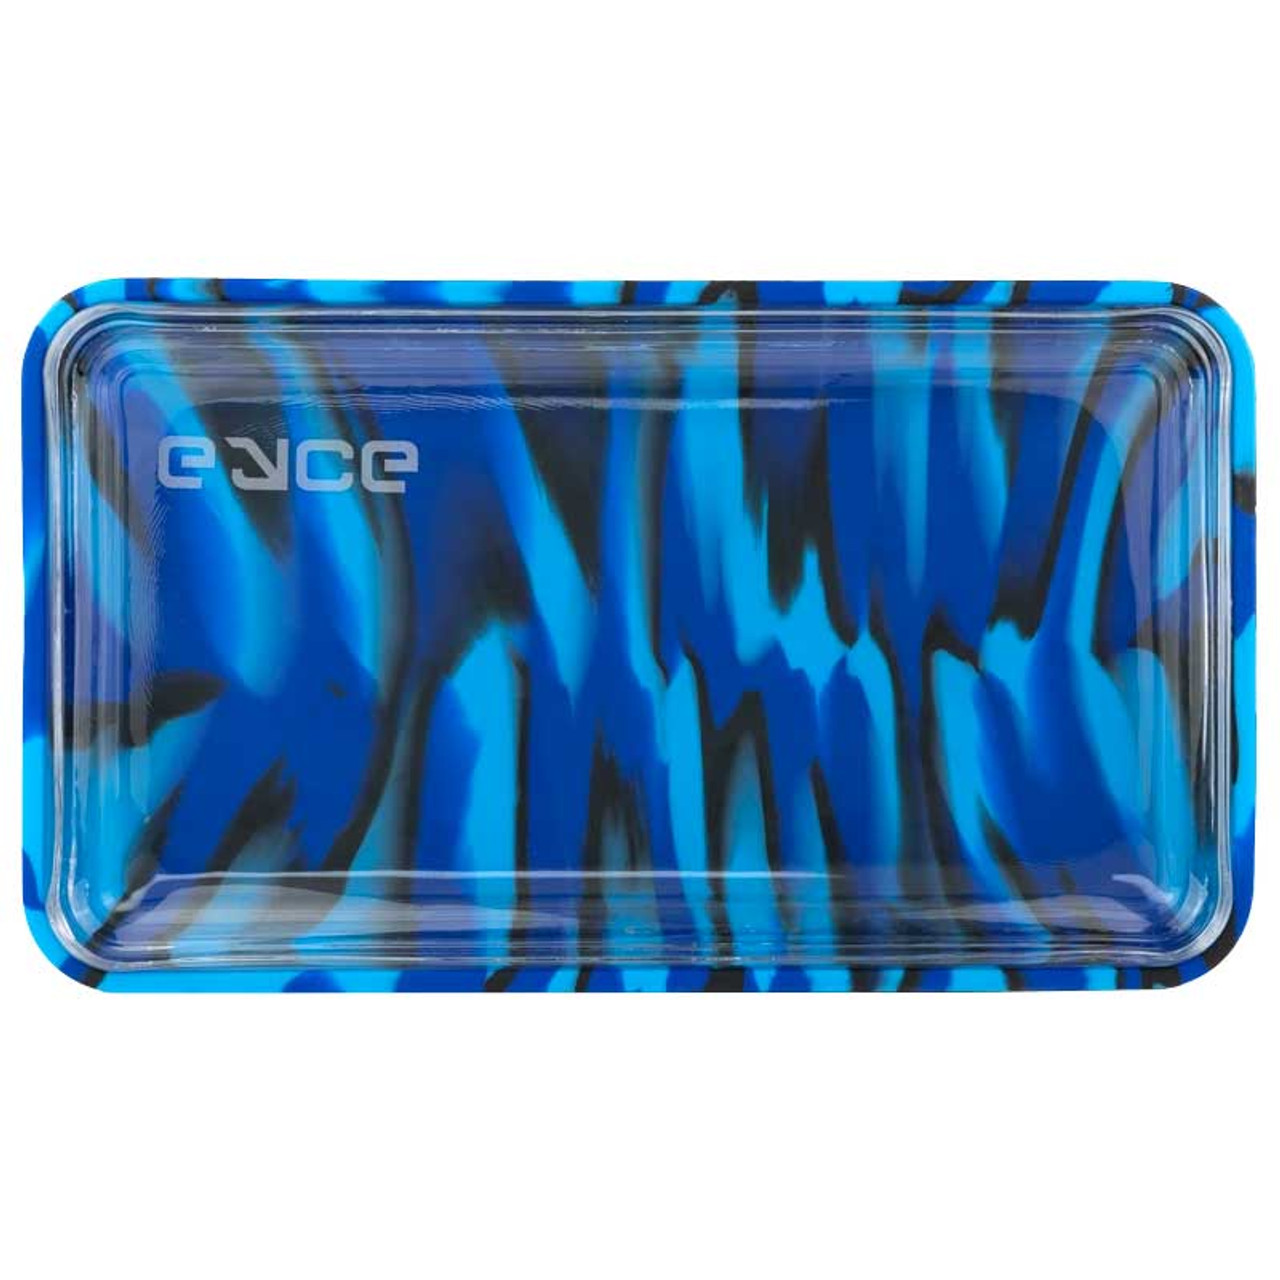 Eyce Rolling Tray - Midnight Blue